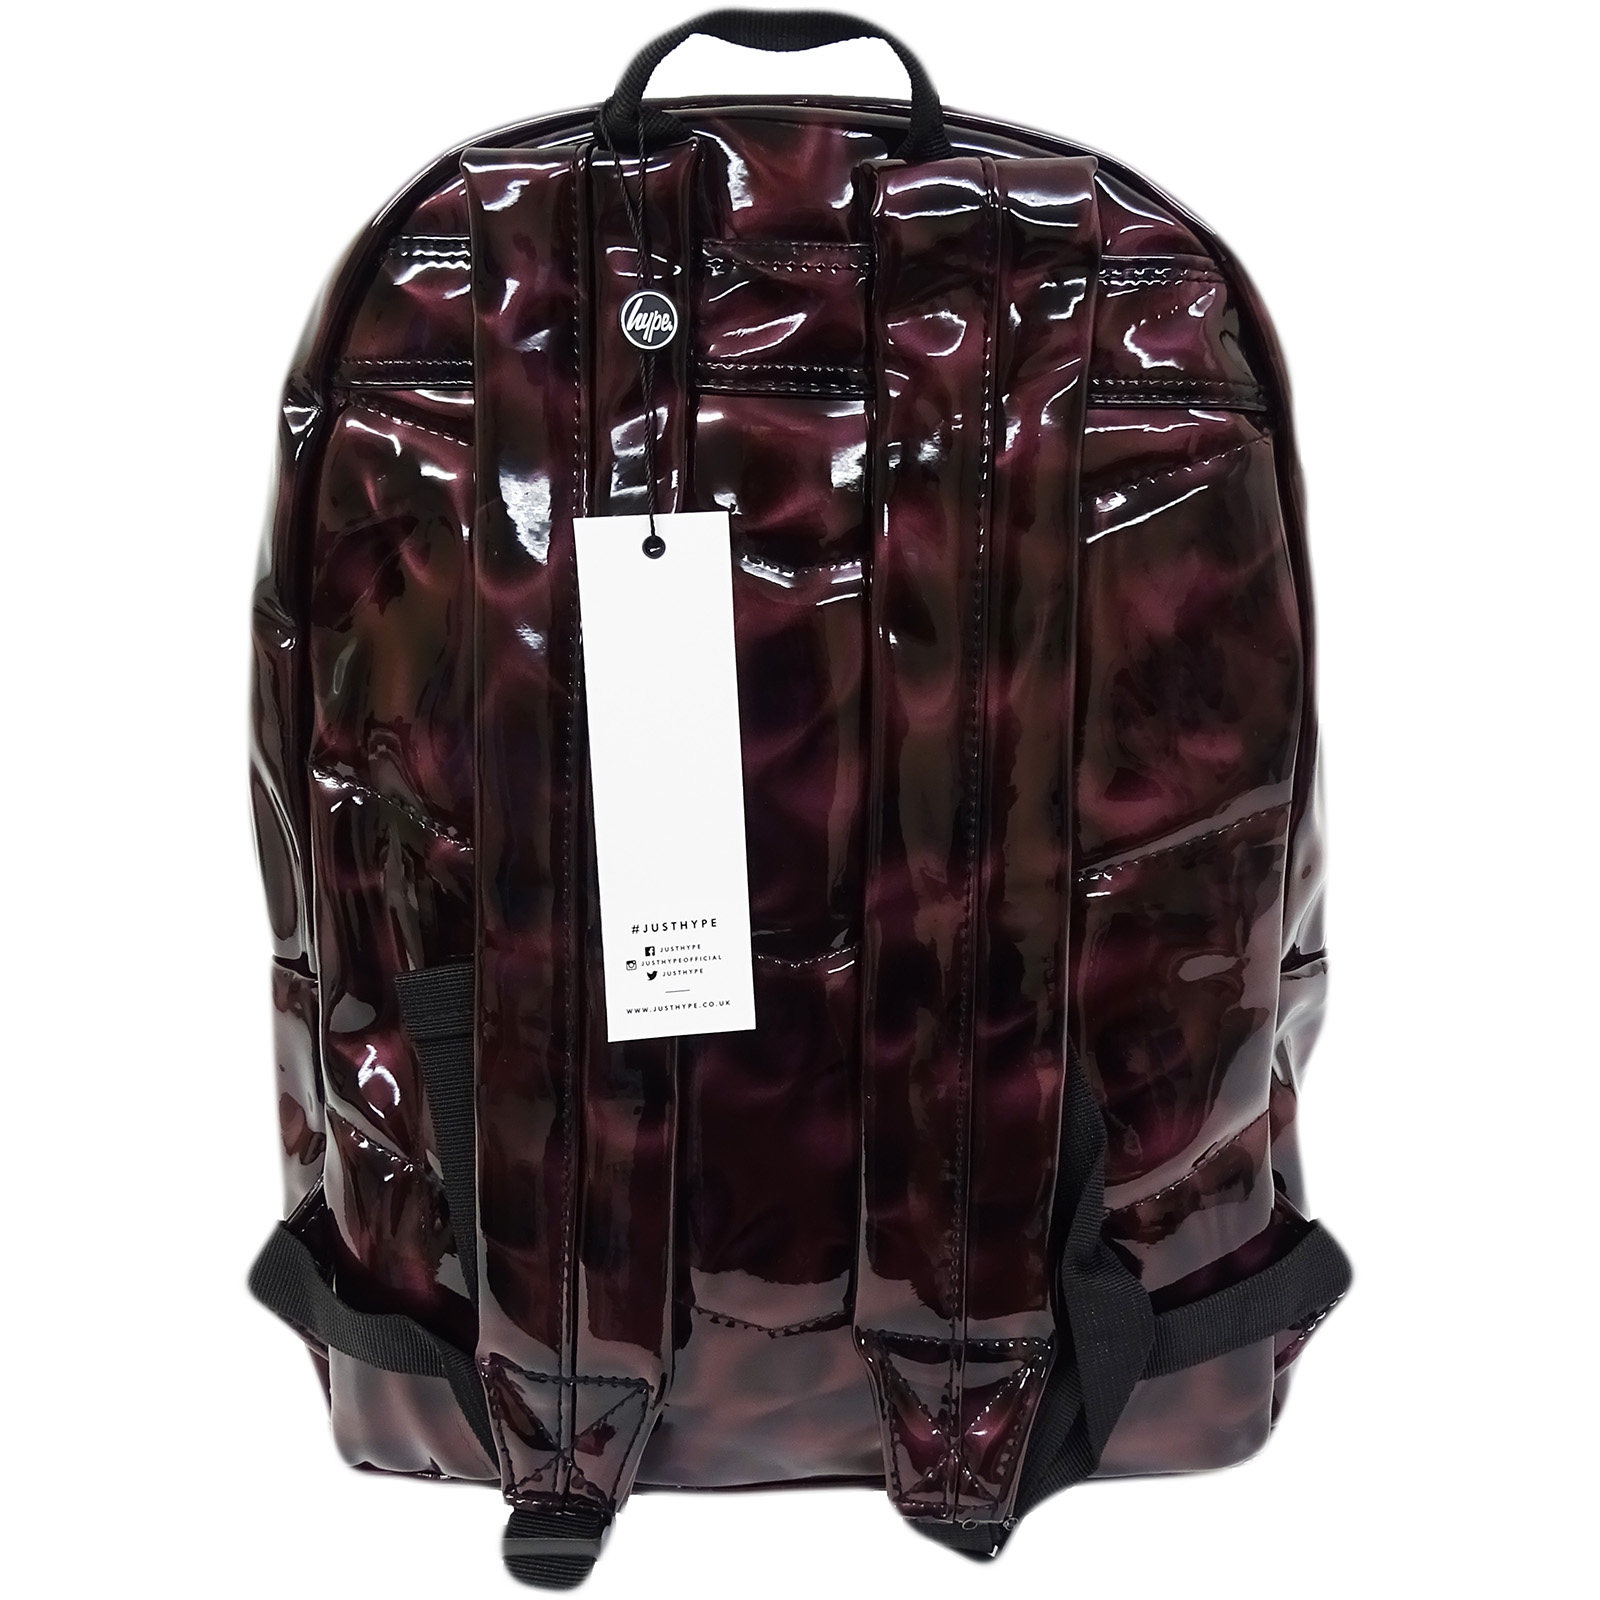 ee242ca6d373 Hype-Backpack-Rucksack-Bag-Black-Burgundy-Speckled-Plain-